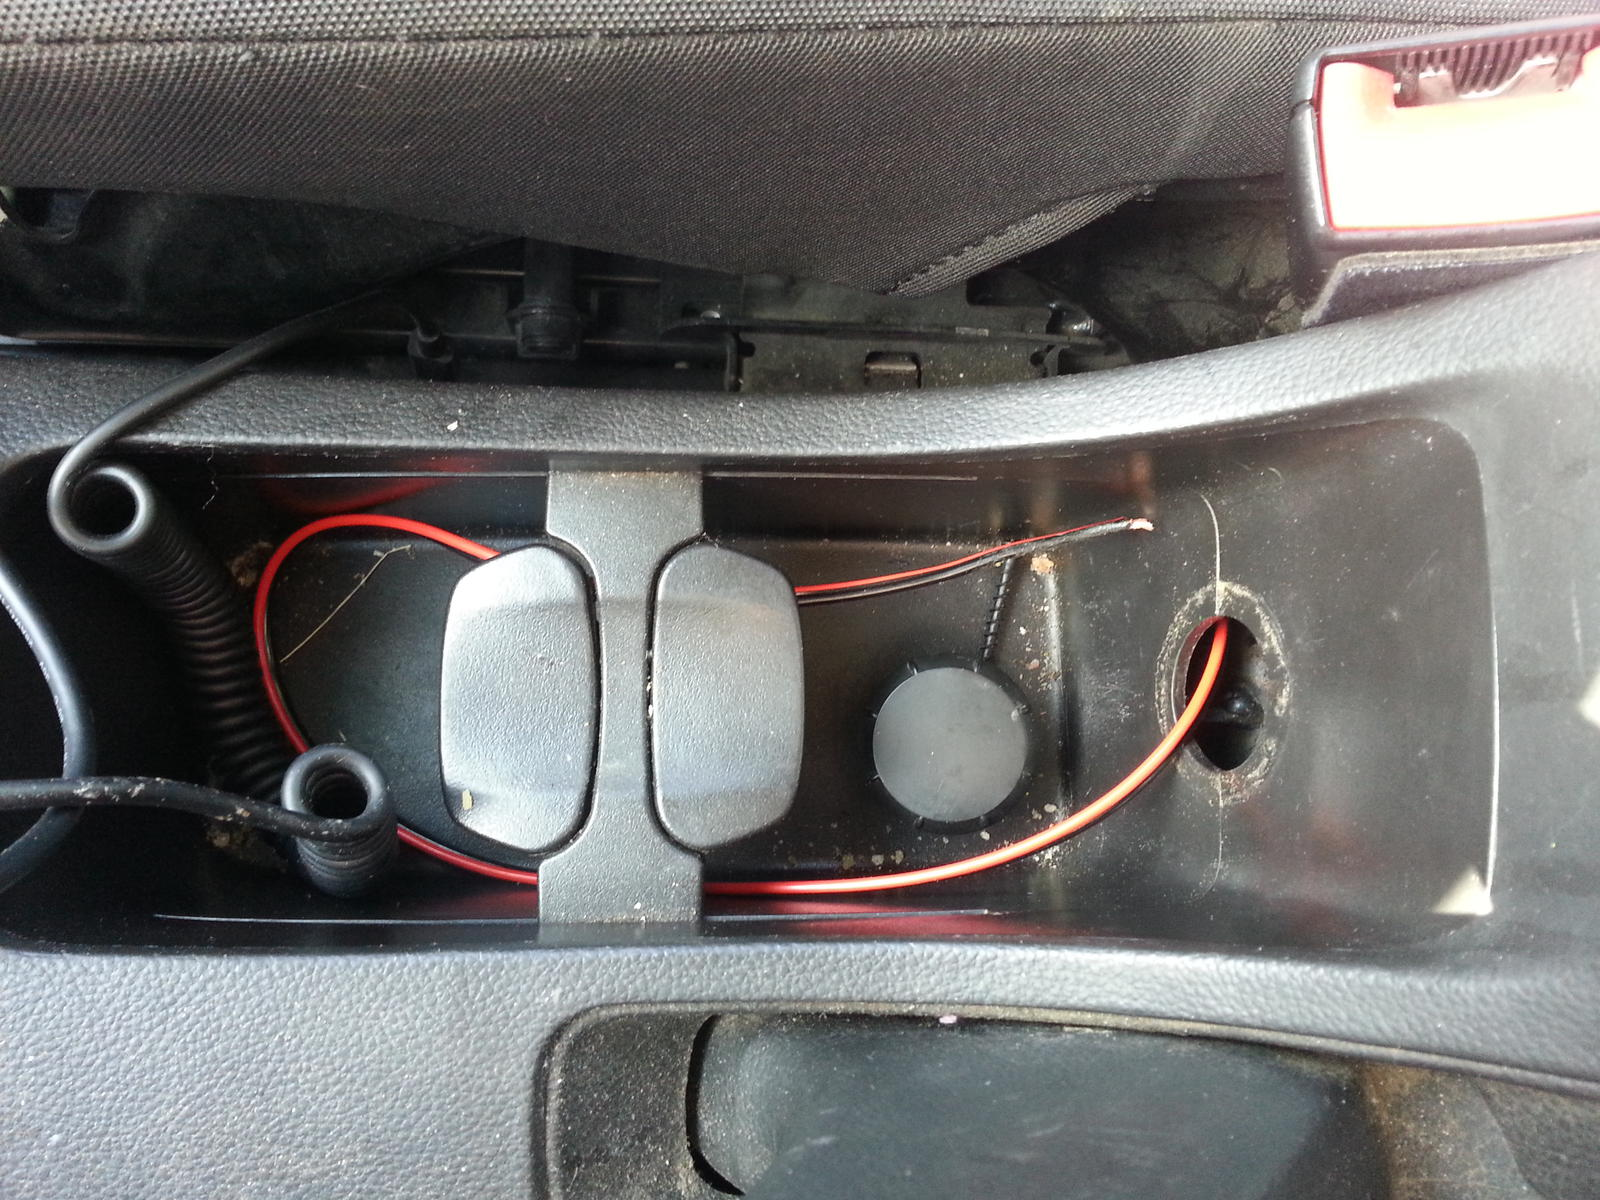 2011 Chevy Cruze Trunk Fuse Box Free Download My 2012 Ls Button